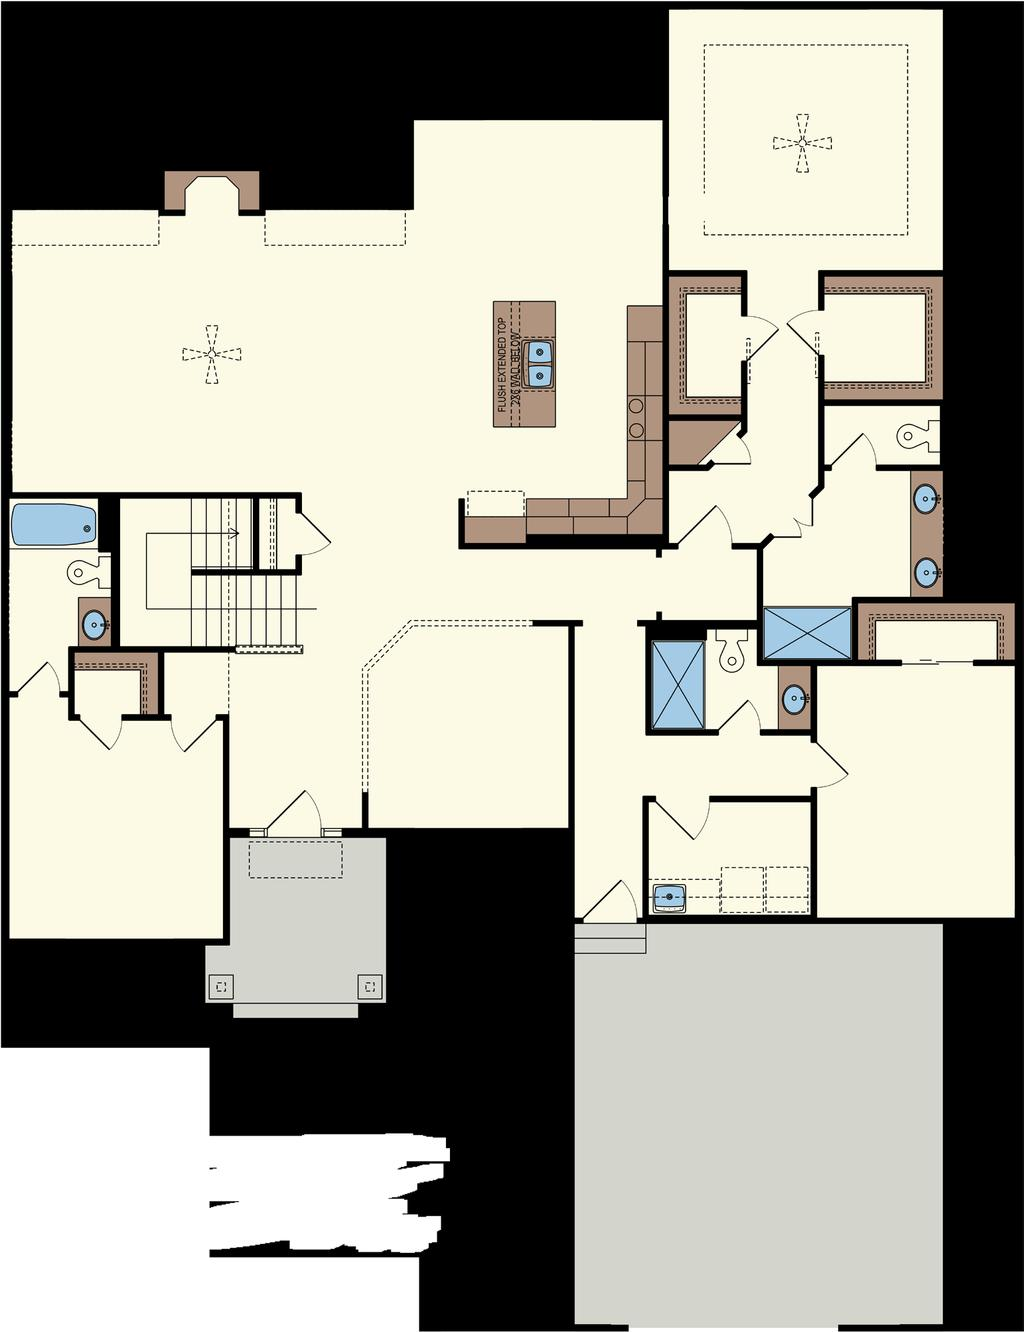 BEDROOM -CLASSIC FLOORPLAN - w/ Third Bedroom & Basement NOOK Optional Pan Ceiling 8 into trusses Foyer: 7 x 10 Great Room: 22 x 15 Nook: 13 x